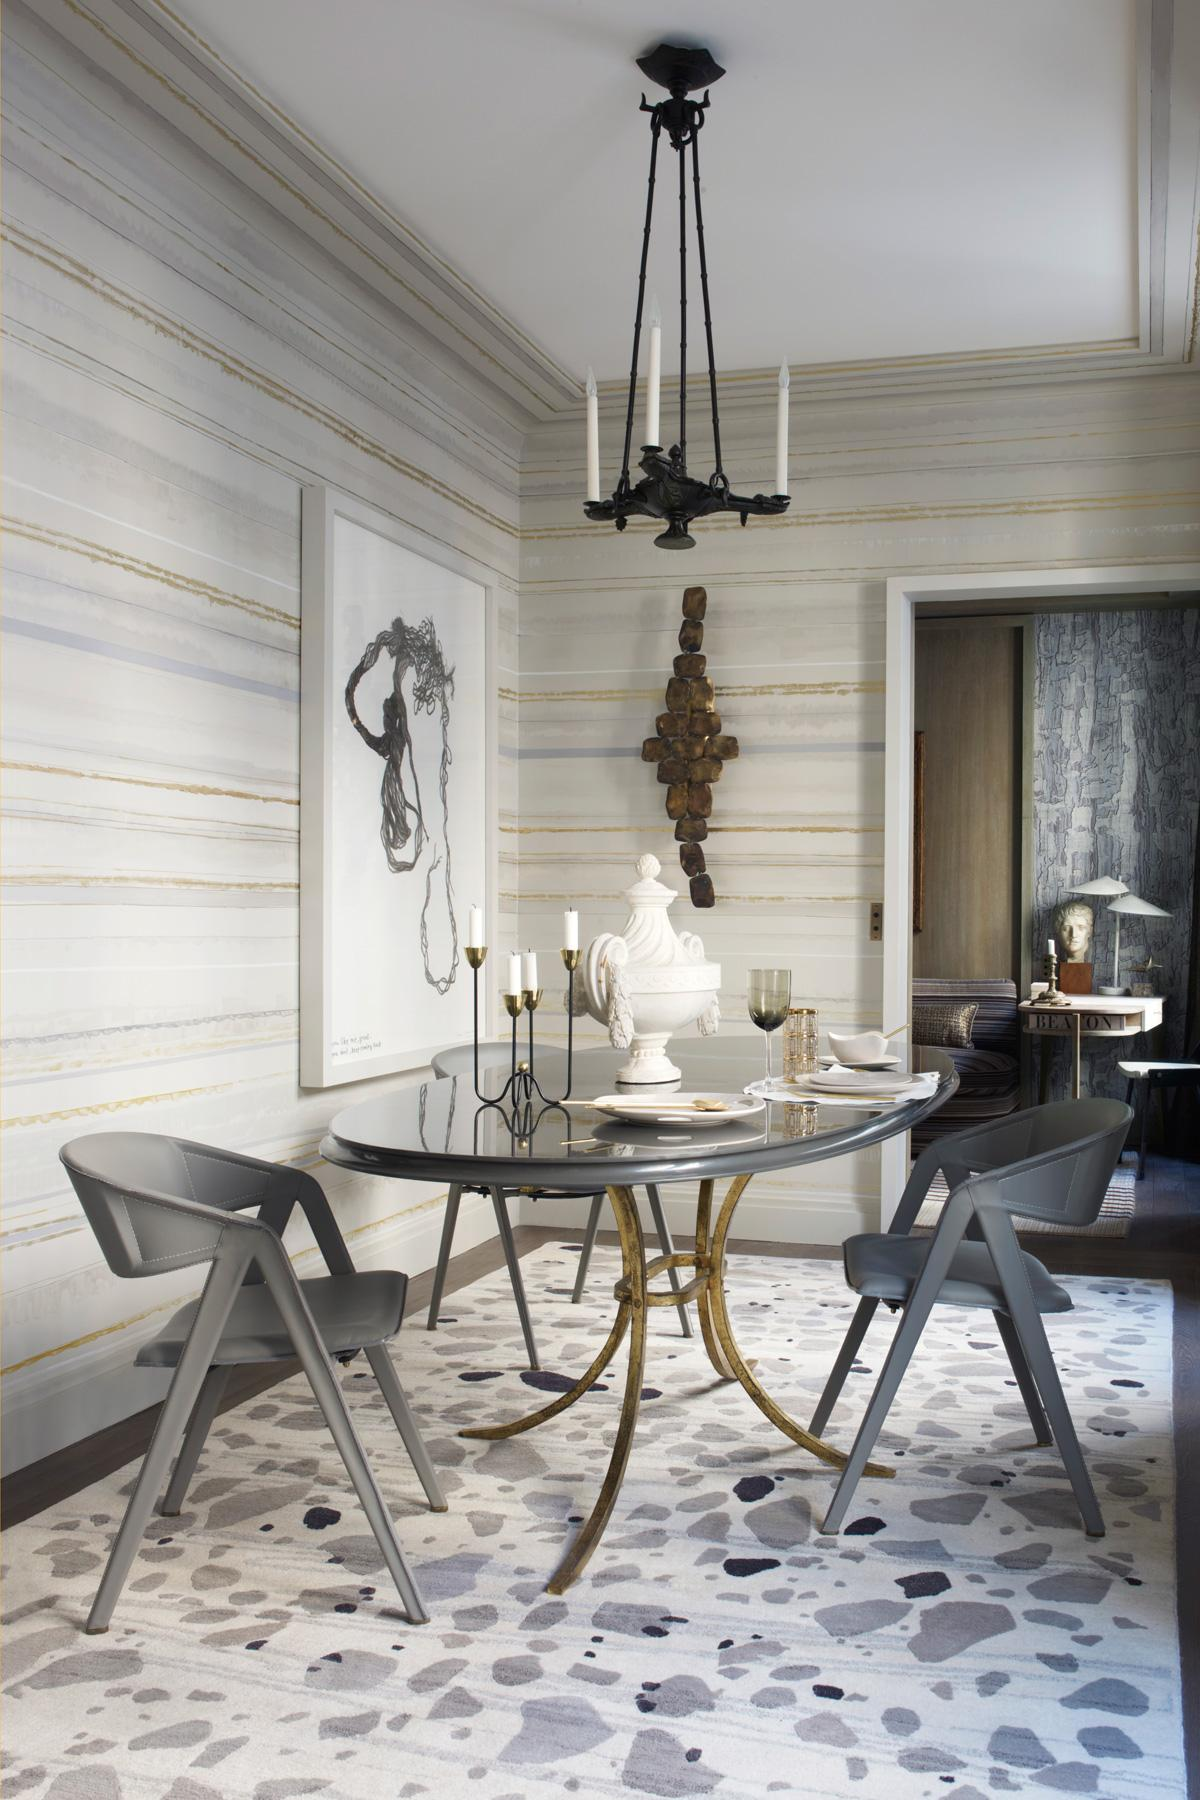 10 Dining Room Ideas to Inspire Yourself by Elle Décor 6 Dining Room Ideas 10 Dining Room Ideas to Inspire Yourself by Elle Décor 10 Dining Room Ideas to Inspire Yourself by Elle D  cor 6